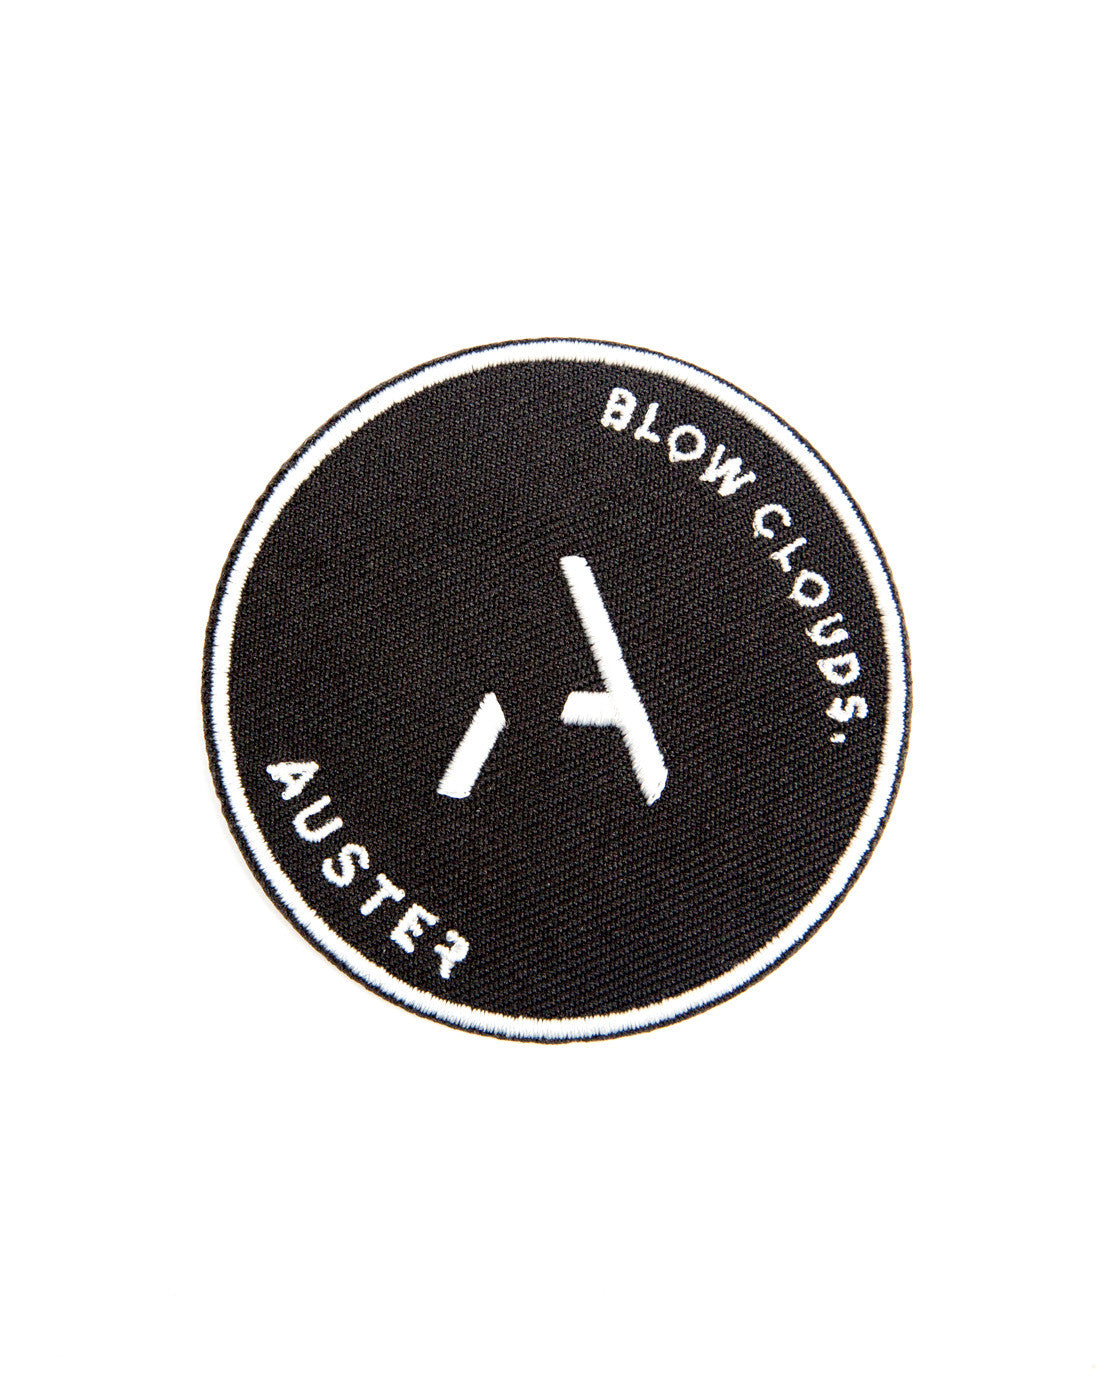 AUSTER PATCH SERIES 1<br>(to spread the word wherever you go)